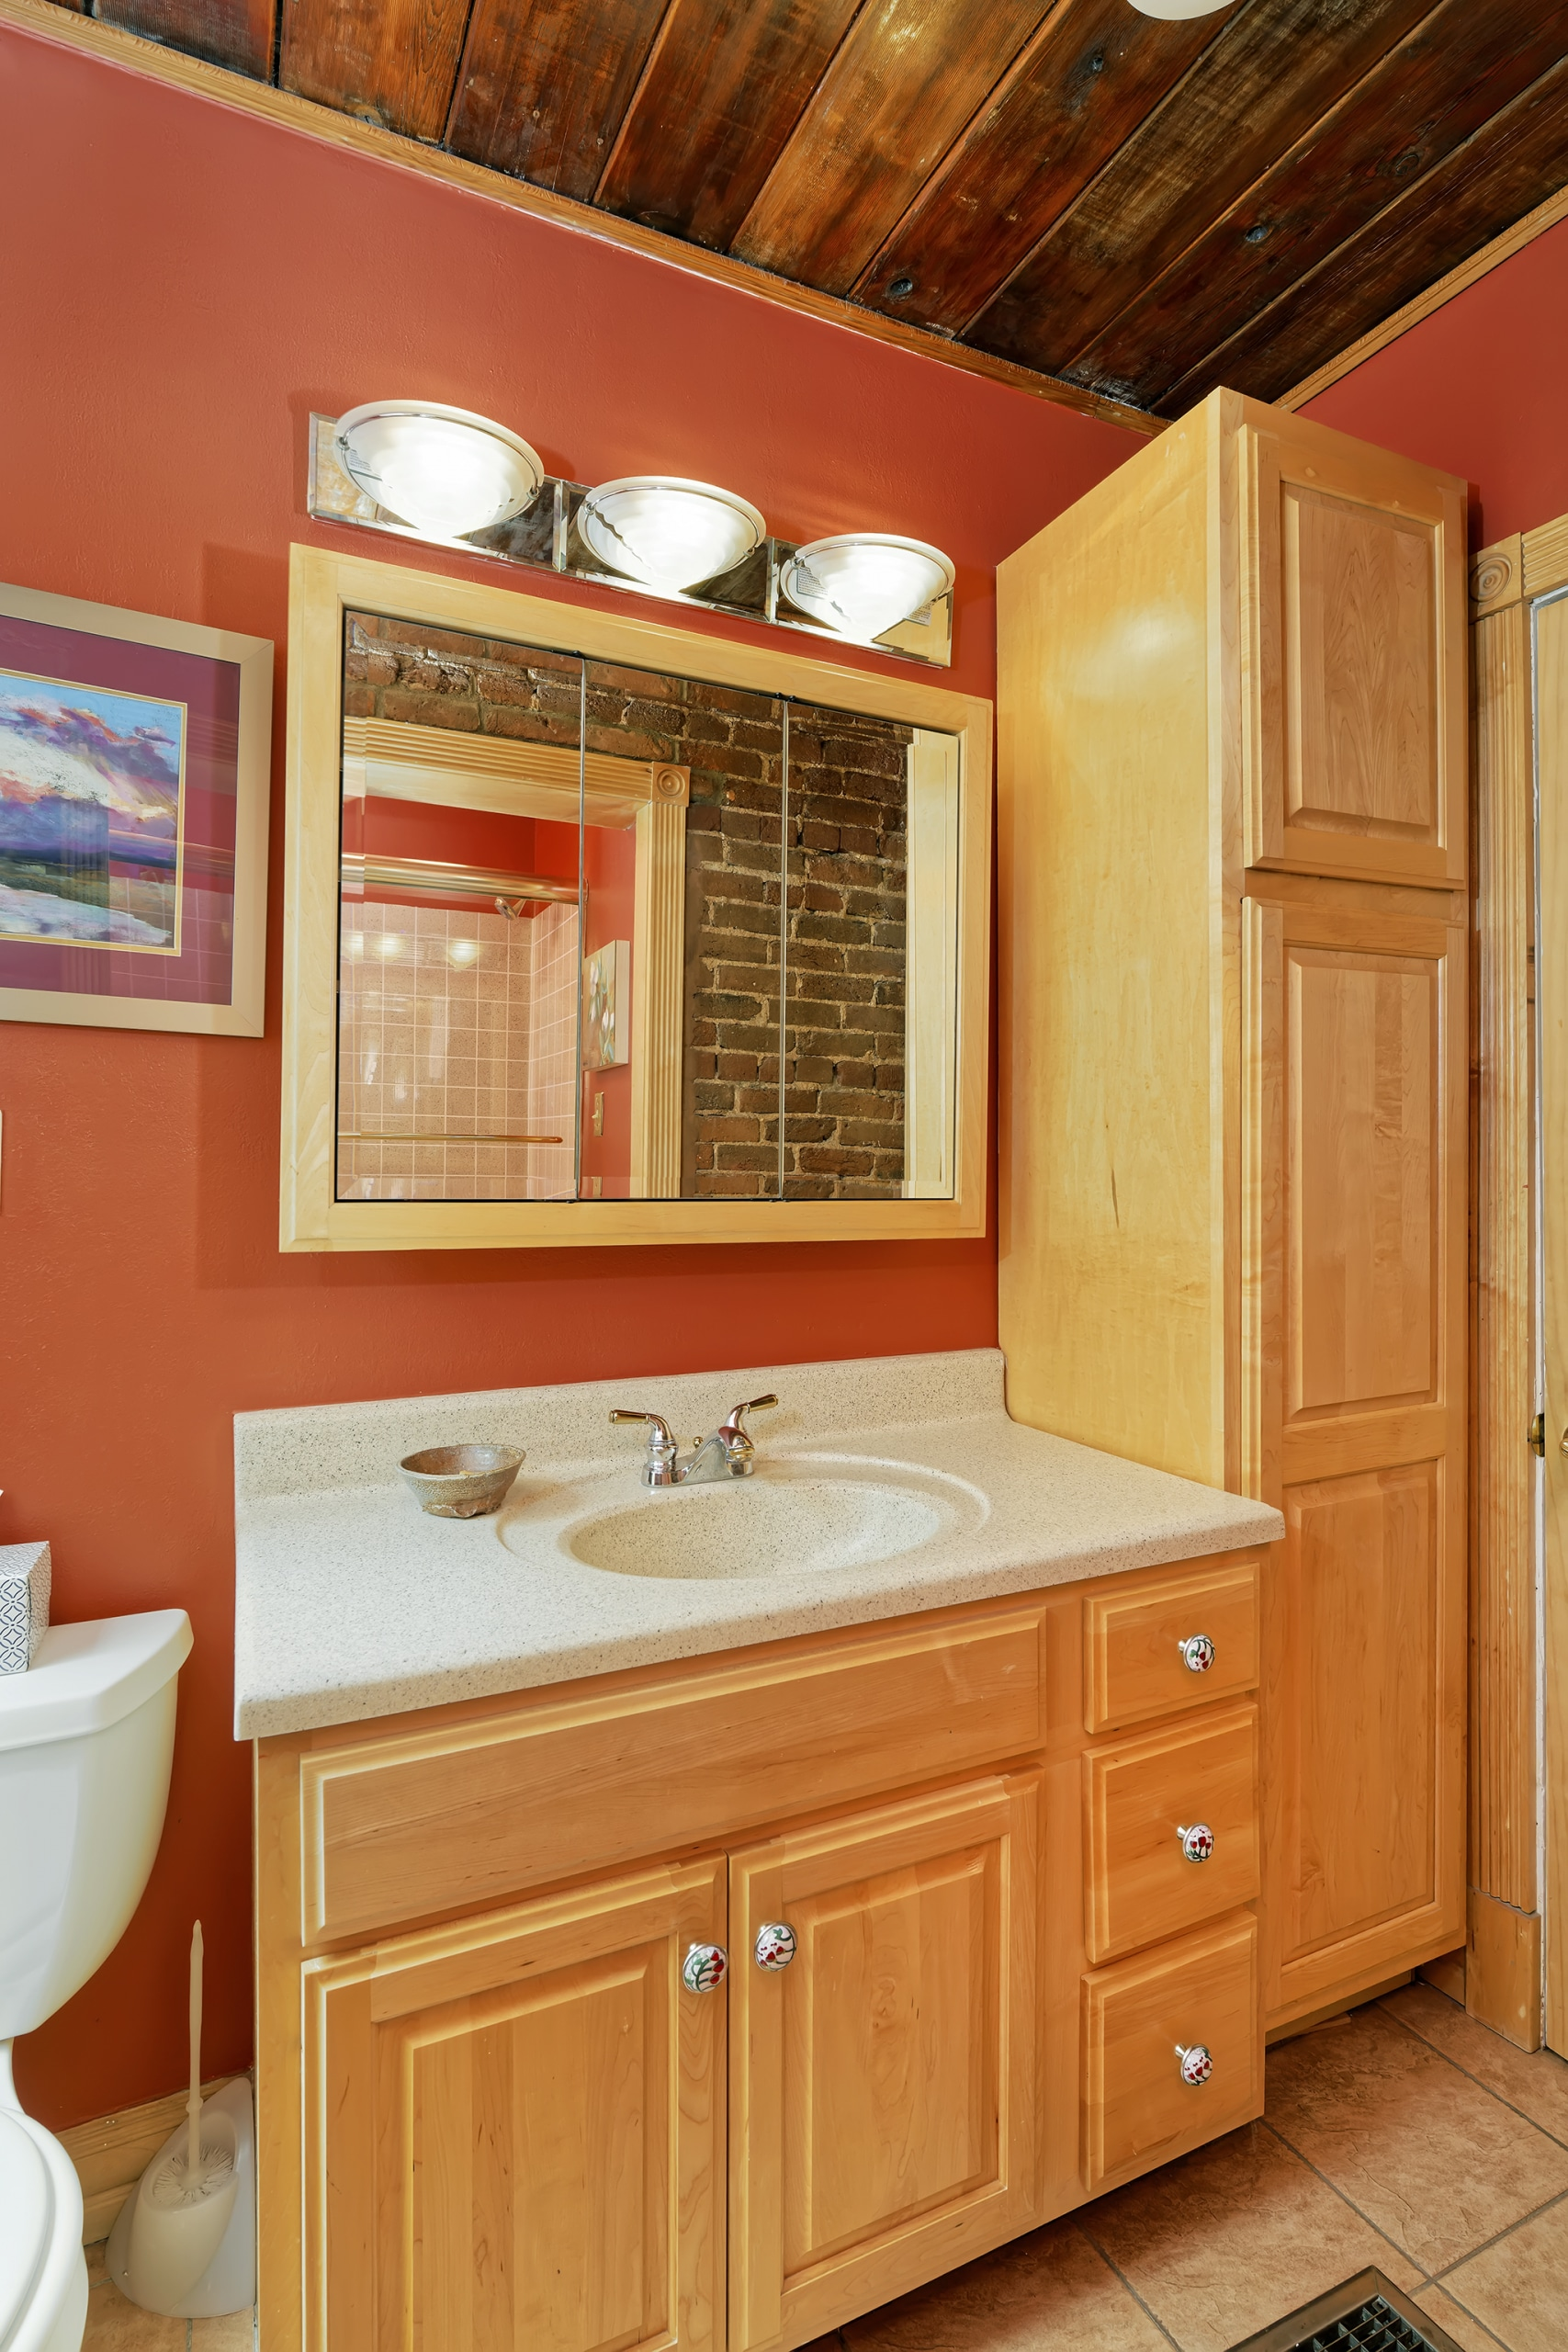 Bathroom with exposed red brick and oak cabinets